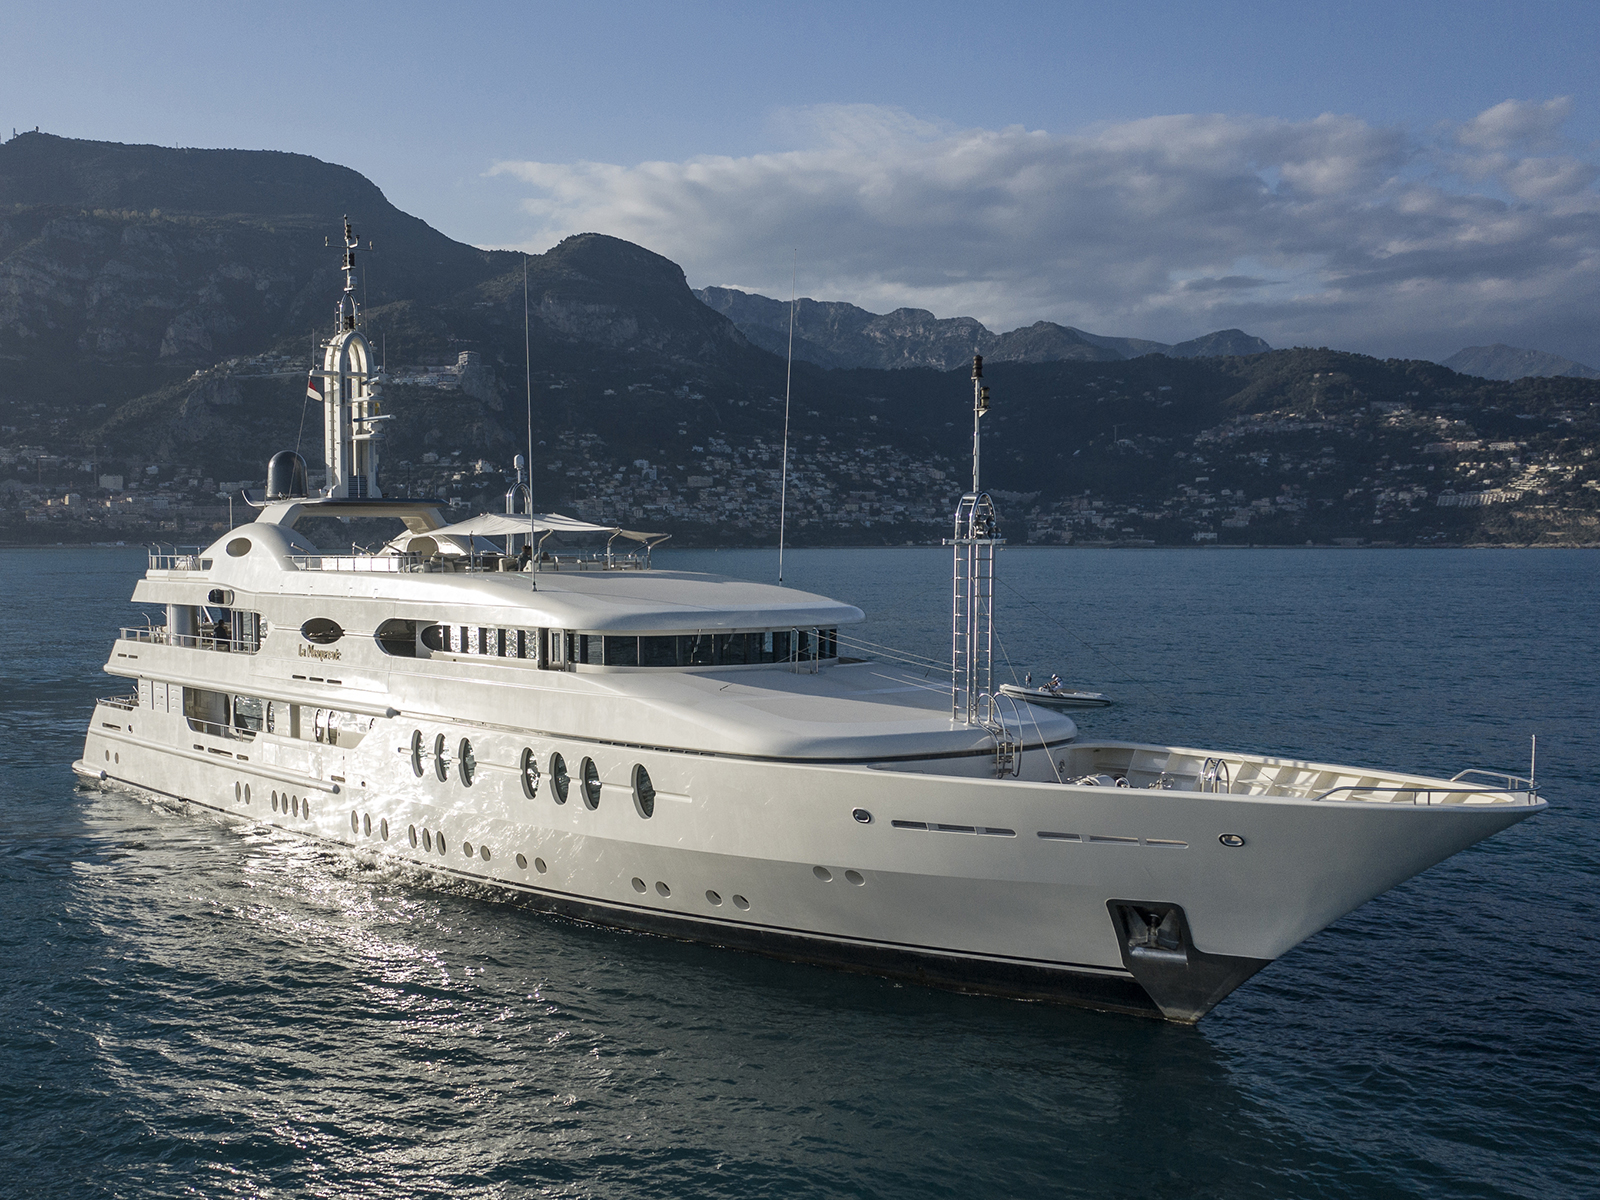 The exterior of La Masquerade, a superyacht from Cecil-Wright & Partners